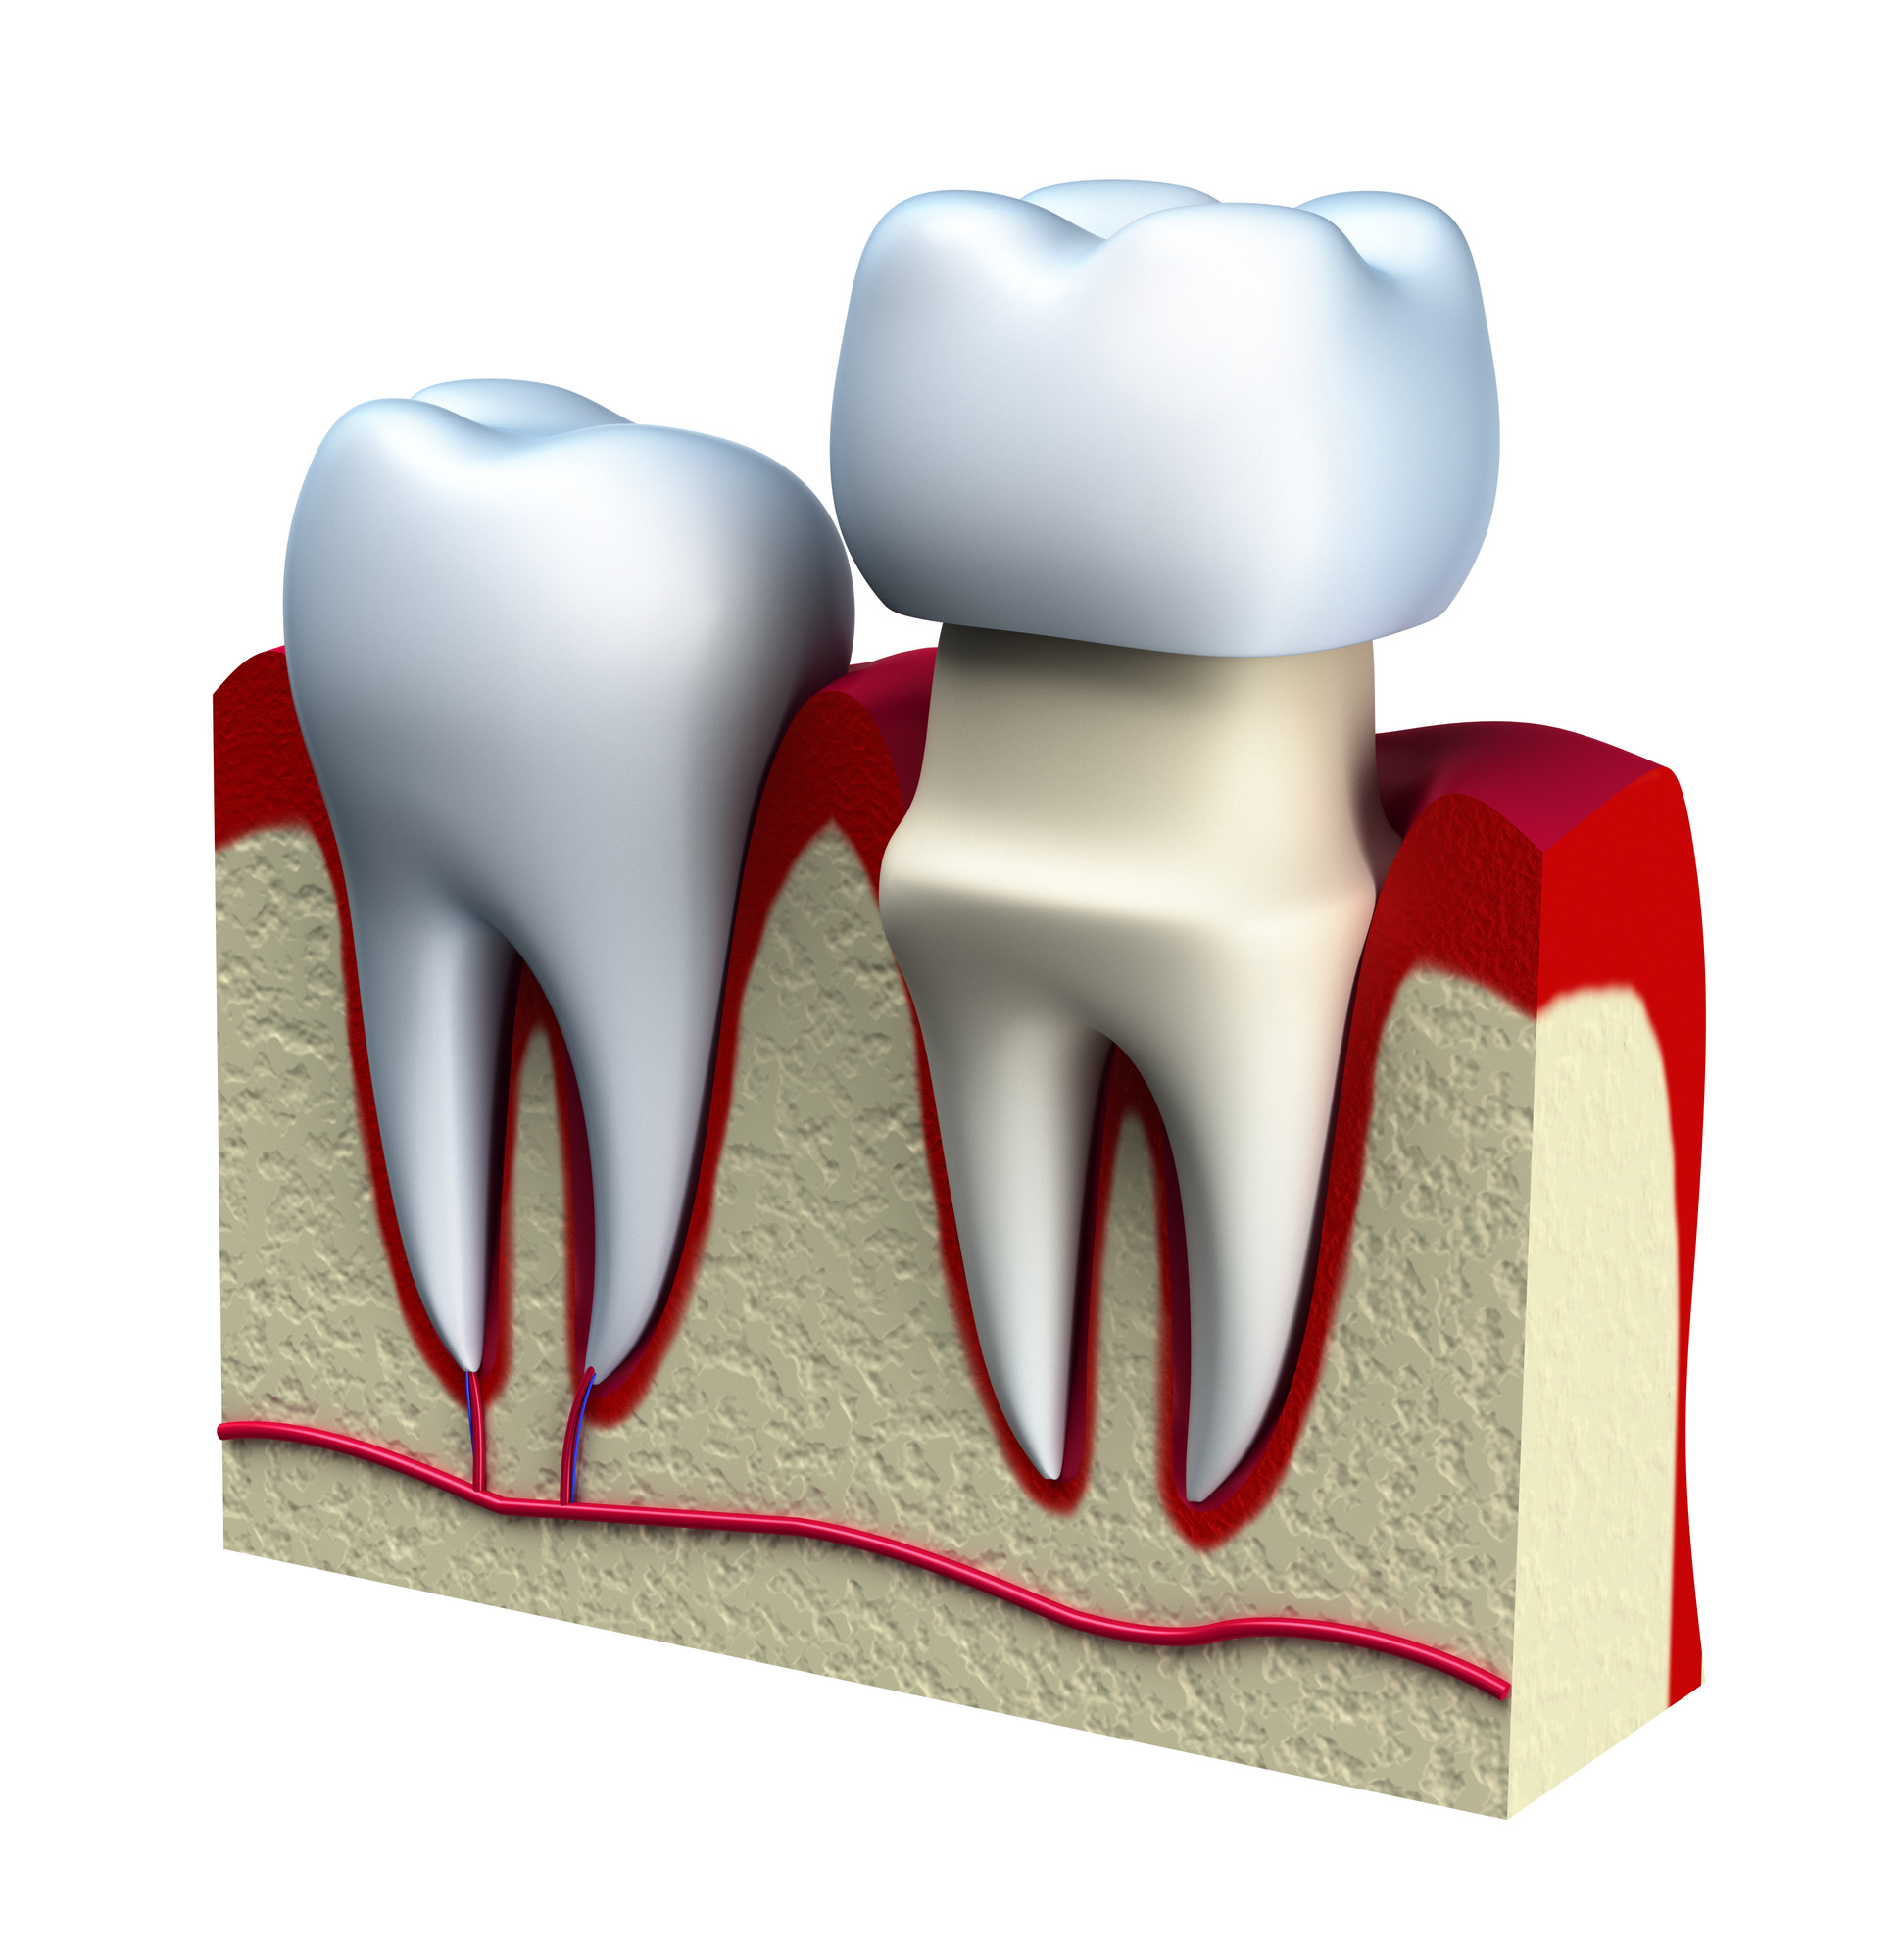 Who is the best dentist for Dental Crowns in Lake Worth ?